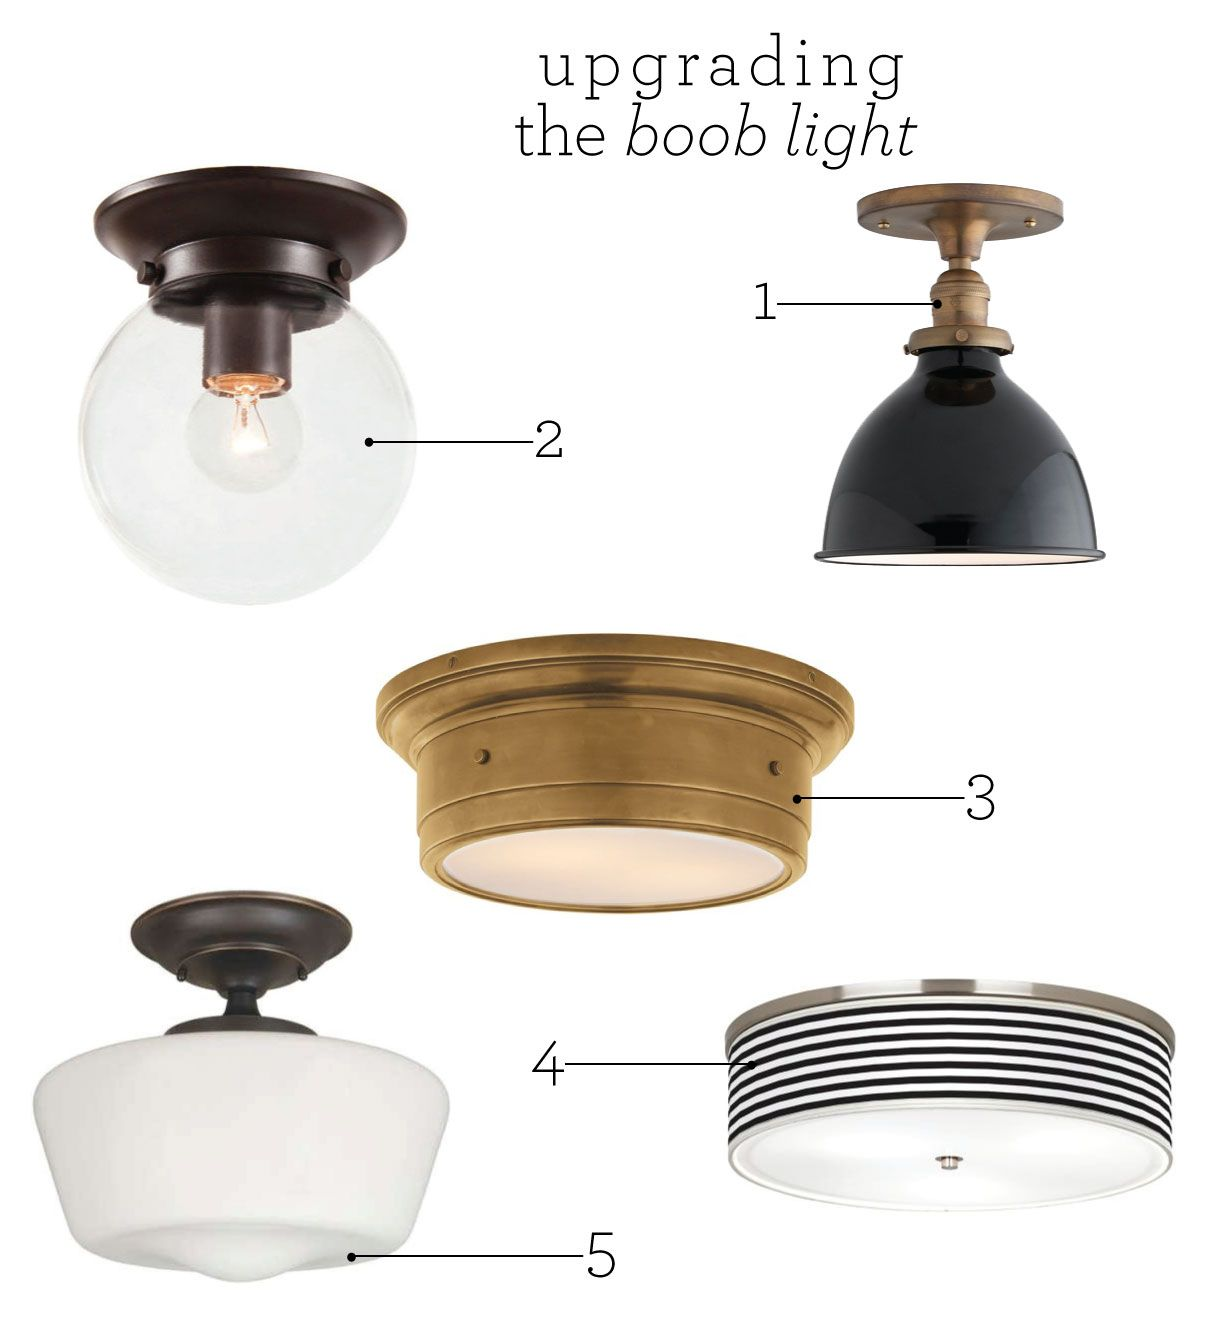 Kitchen Sink Light Fixtures: Home // Finishes, Accessories